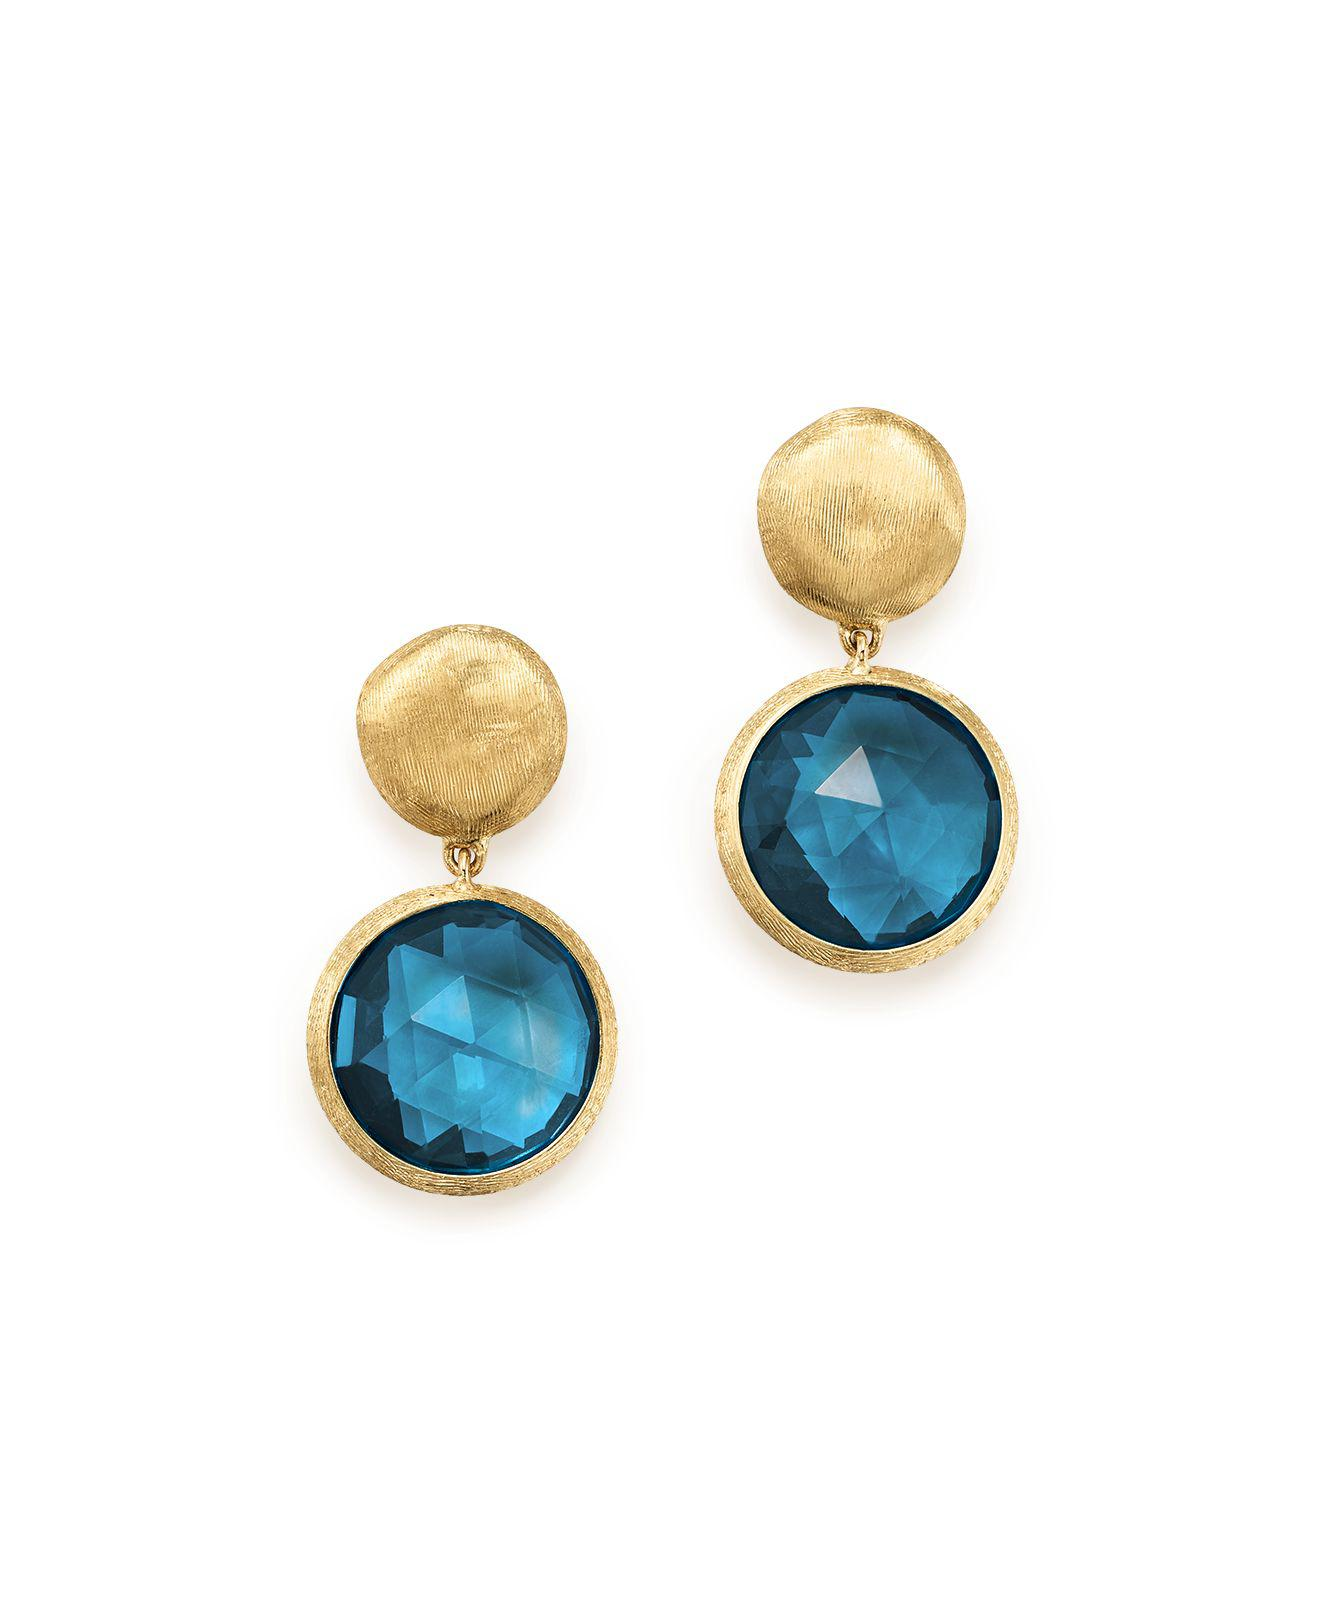 Marco Bicego Jaipur Drop Earrings with Blue Topaz & Diamonds InqerR